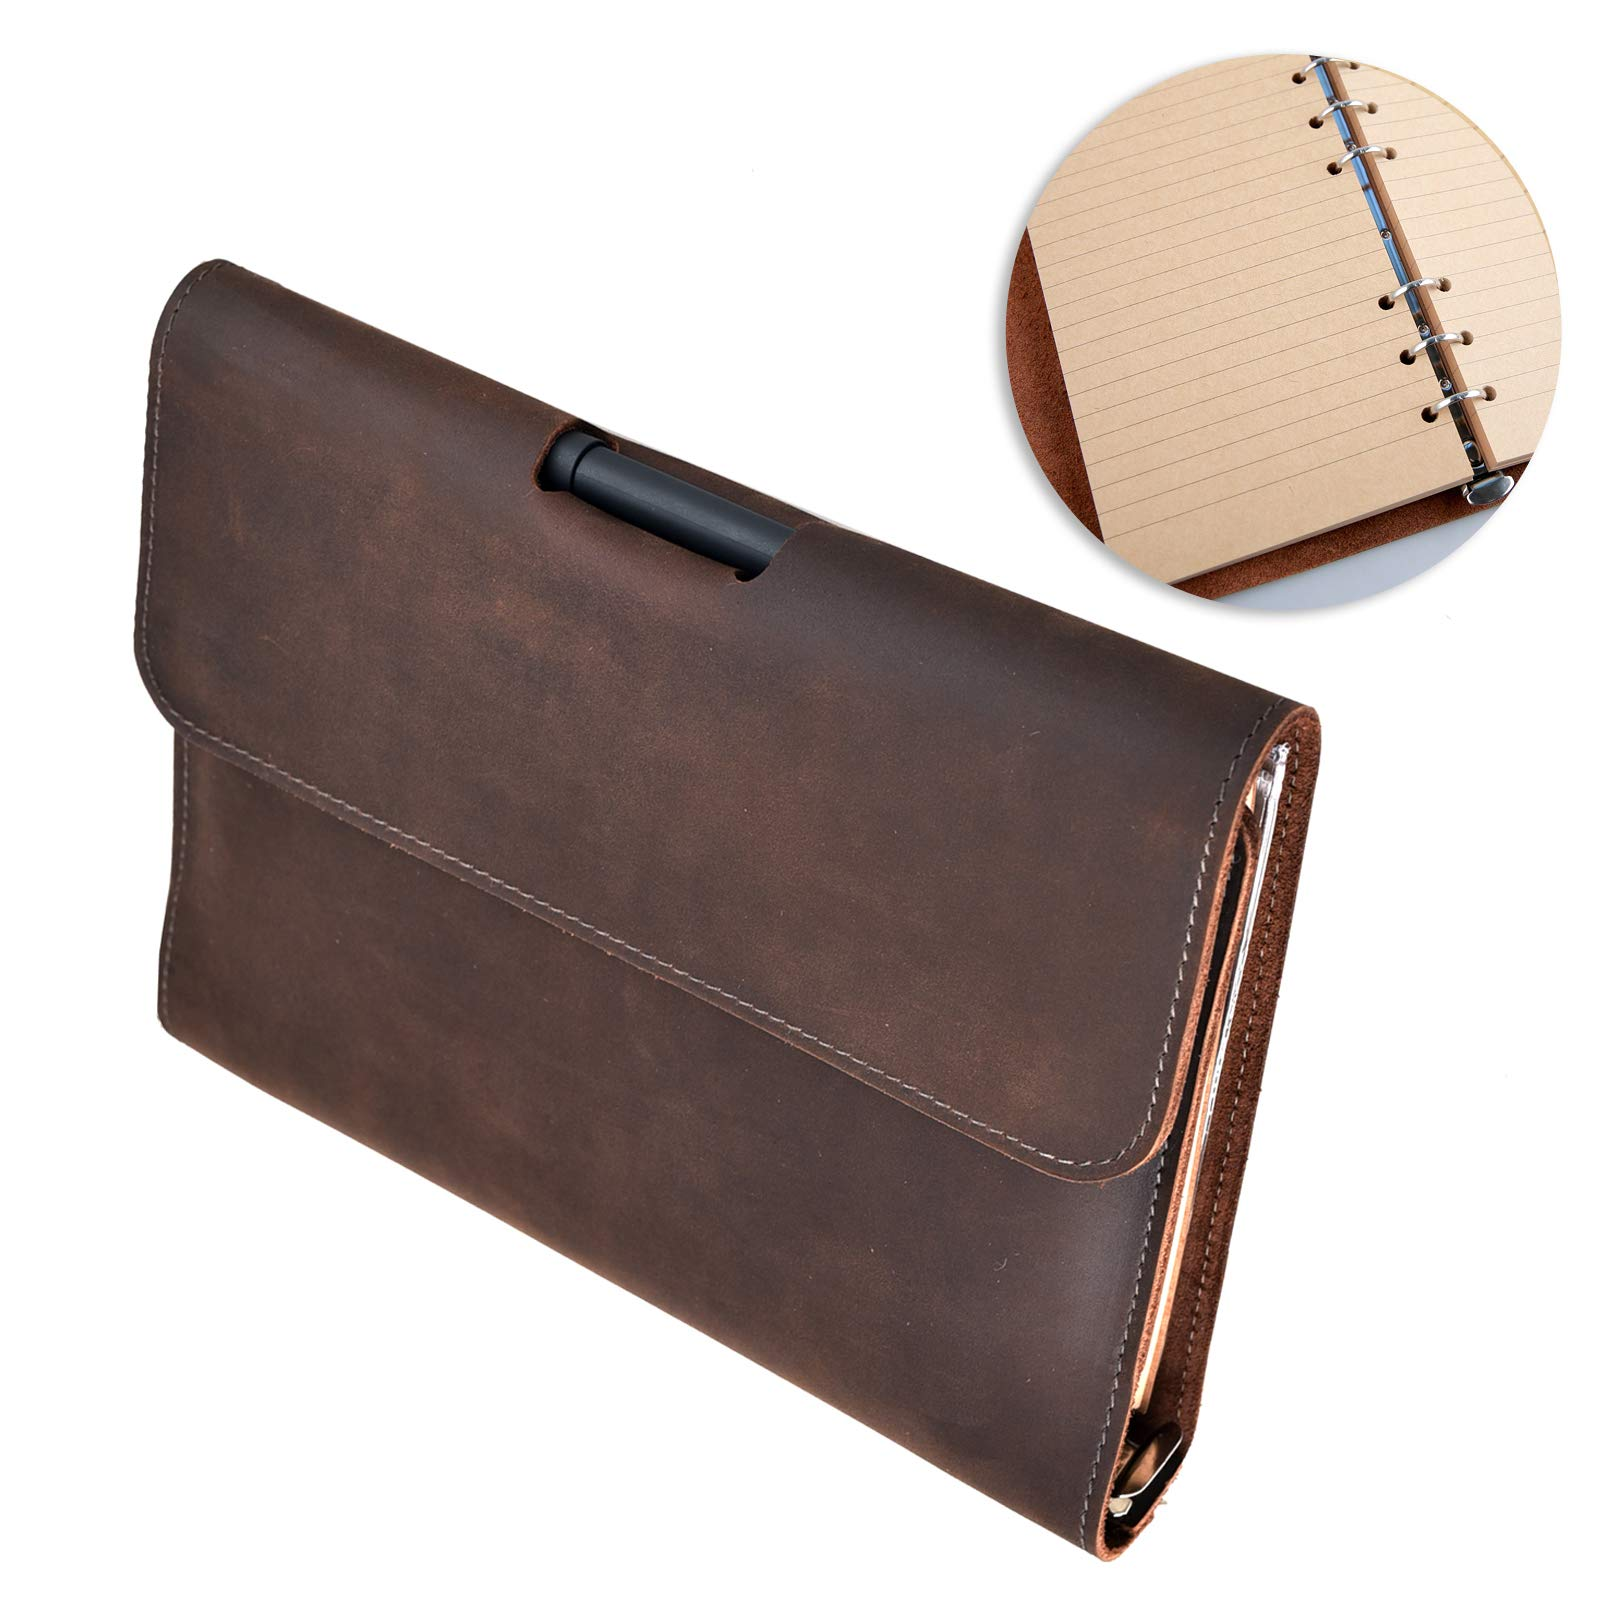 Leather Journal Notebook Refillable, with Pen Loop Writing Bound Diary Book for Men Women, Padfolio Lined Paper Handmade Genuine Leather Travel Notepad Cover, 160 Pages A5 Vintage Gift